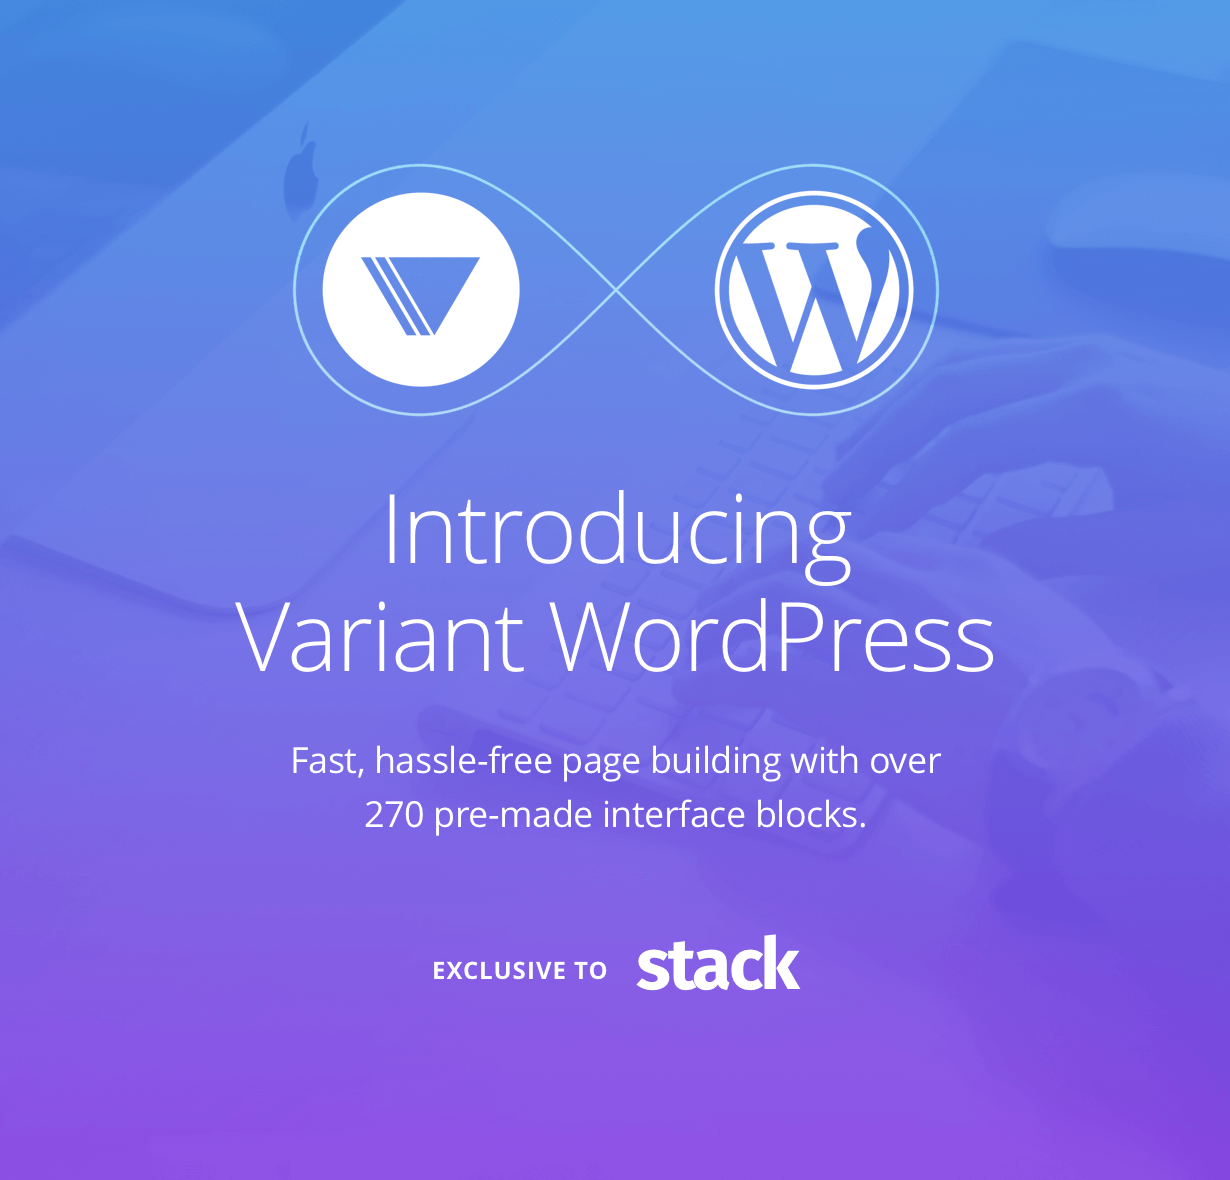 promo2 - Stack - Multi-Purpose WordPress Theme with Variant Page Builder & Visual Composer